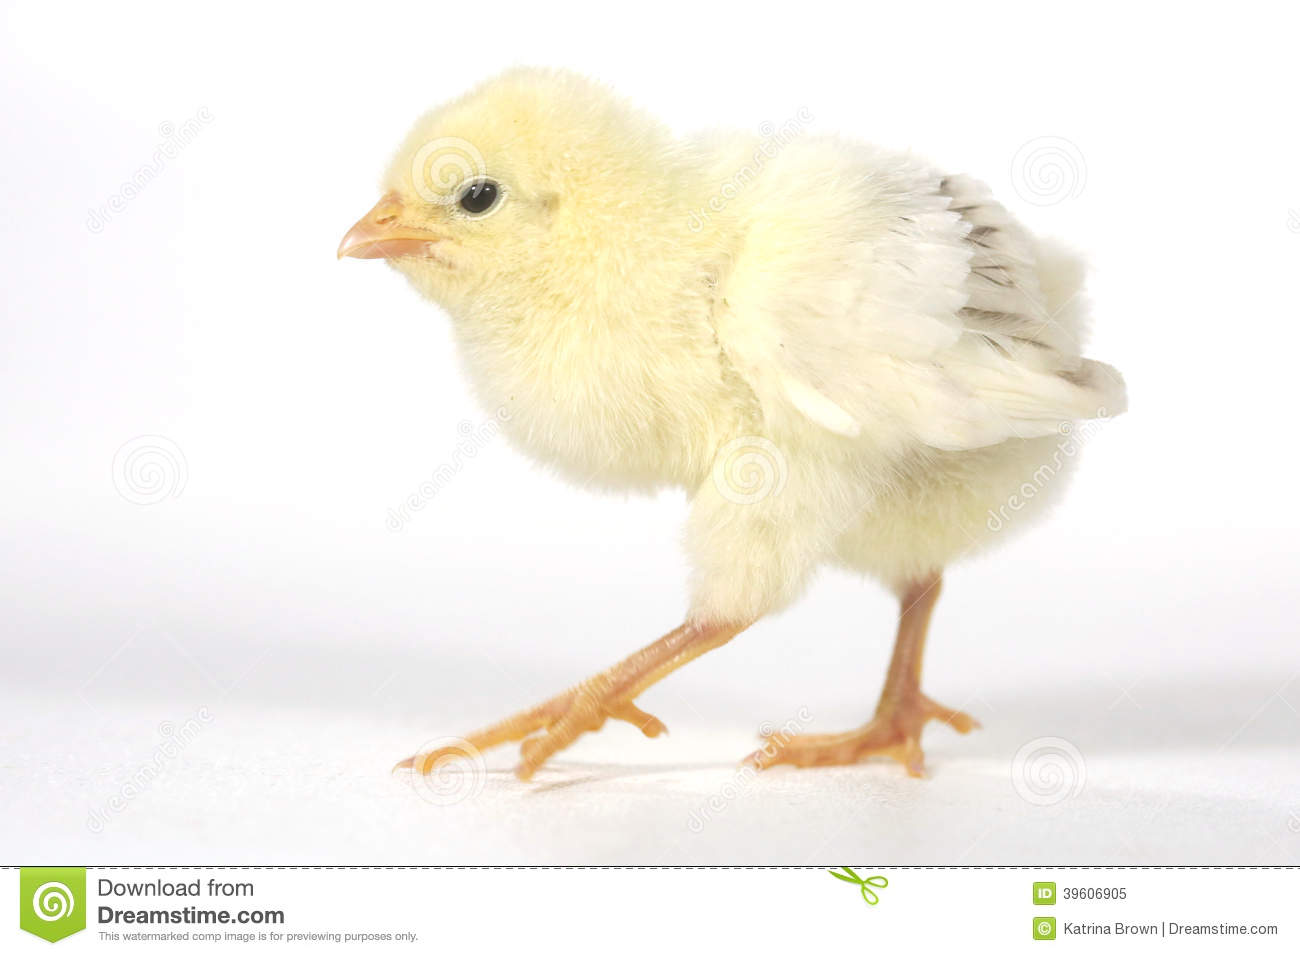 Adorable Baby Chick Chicken On White Background Stock Photo - Image ...